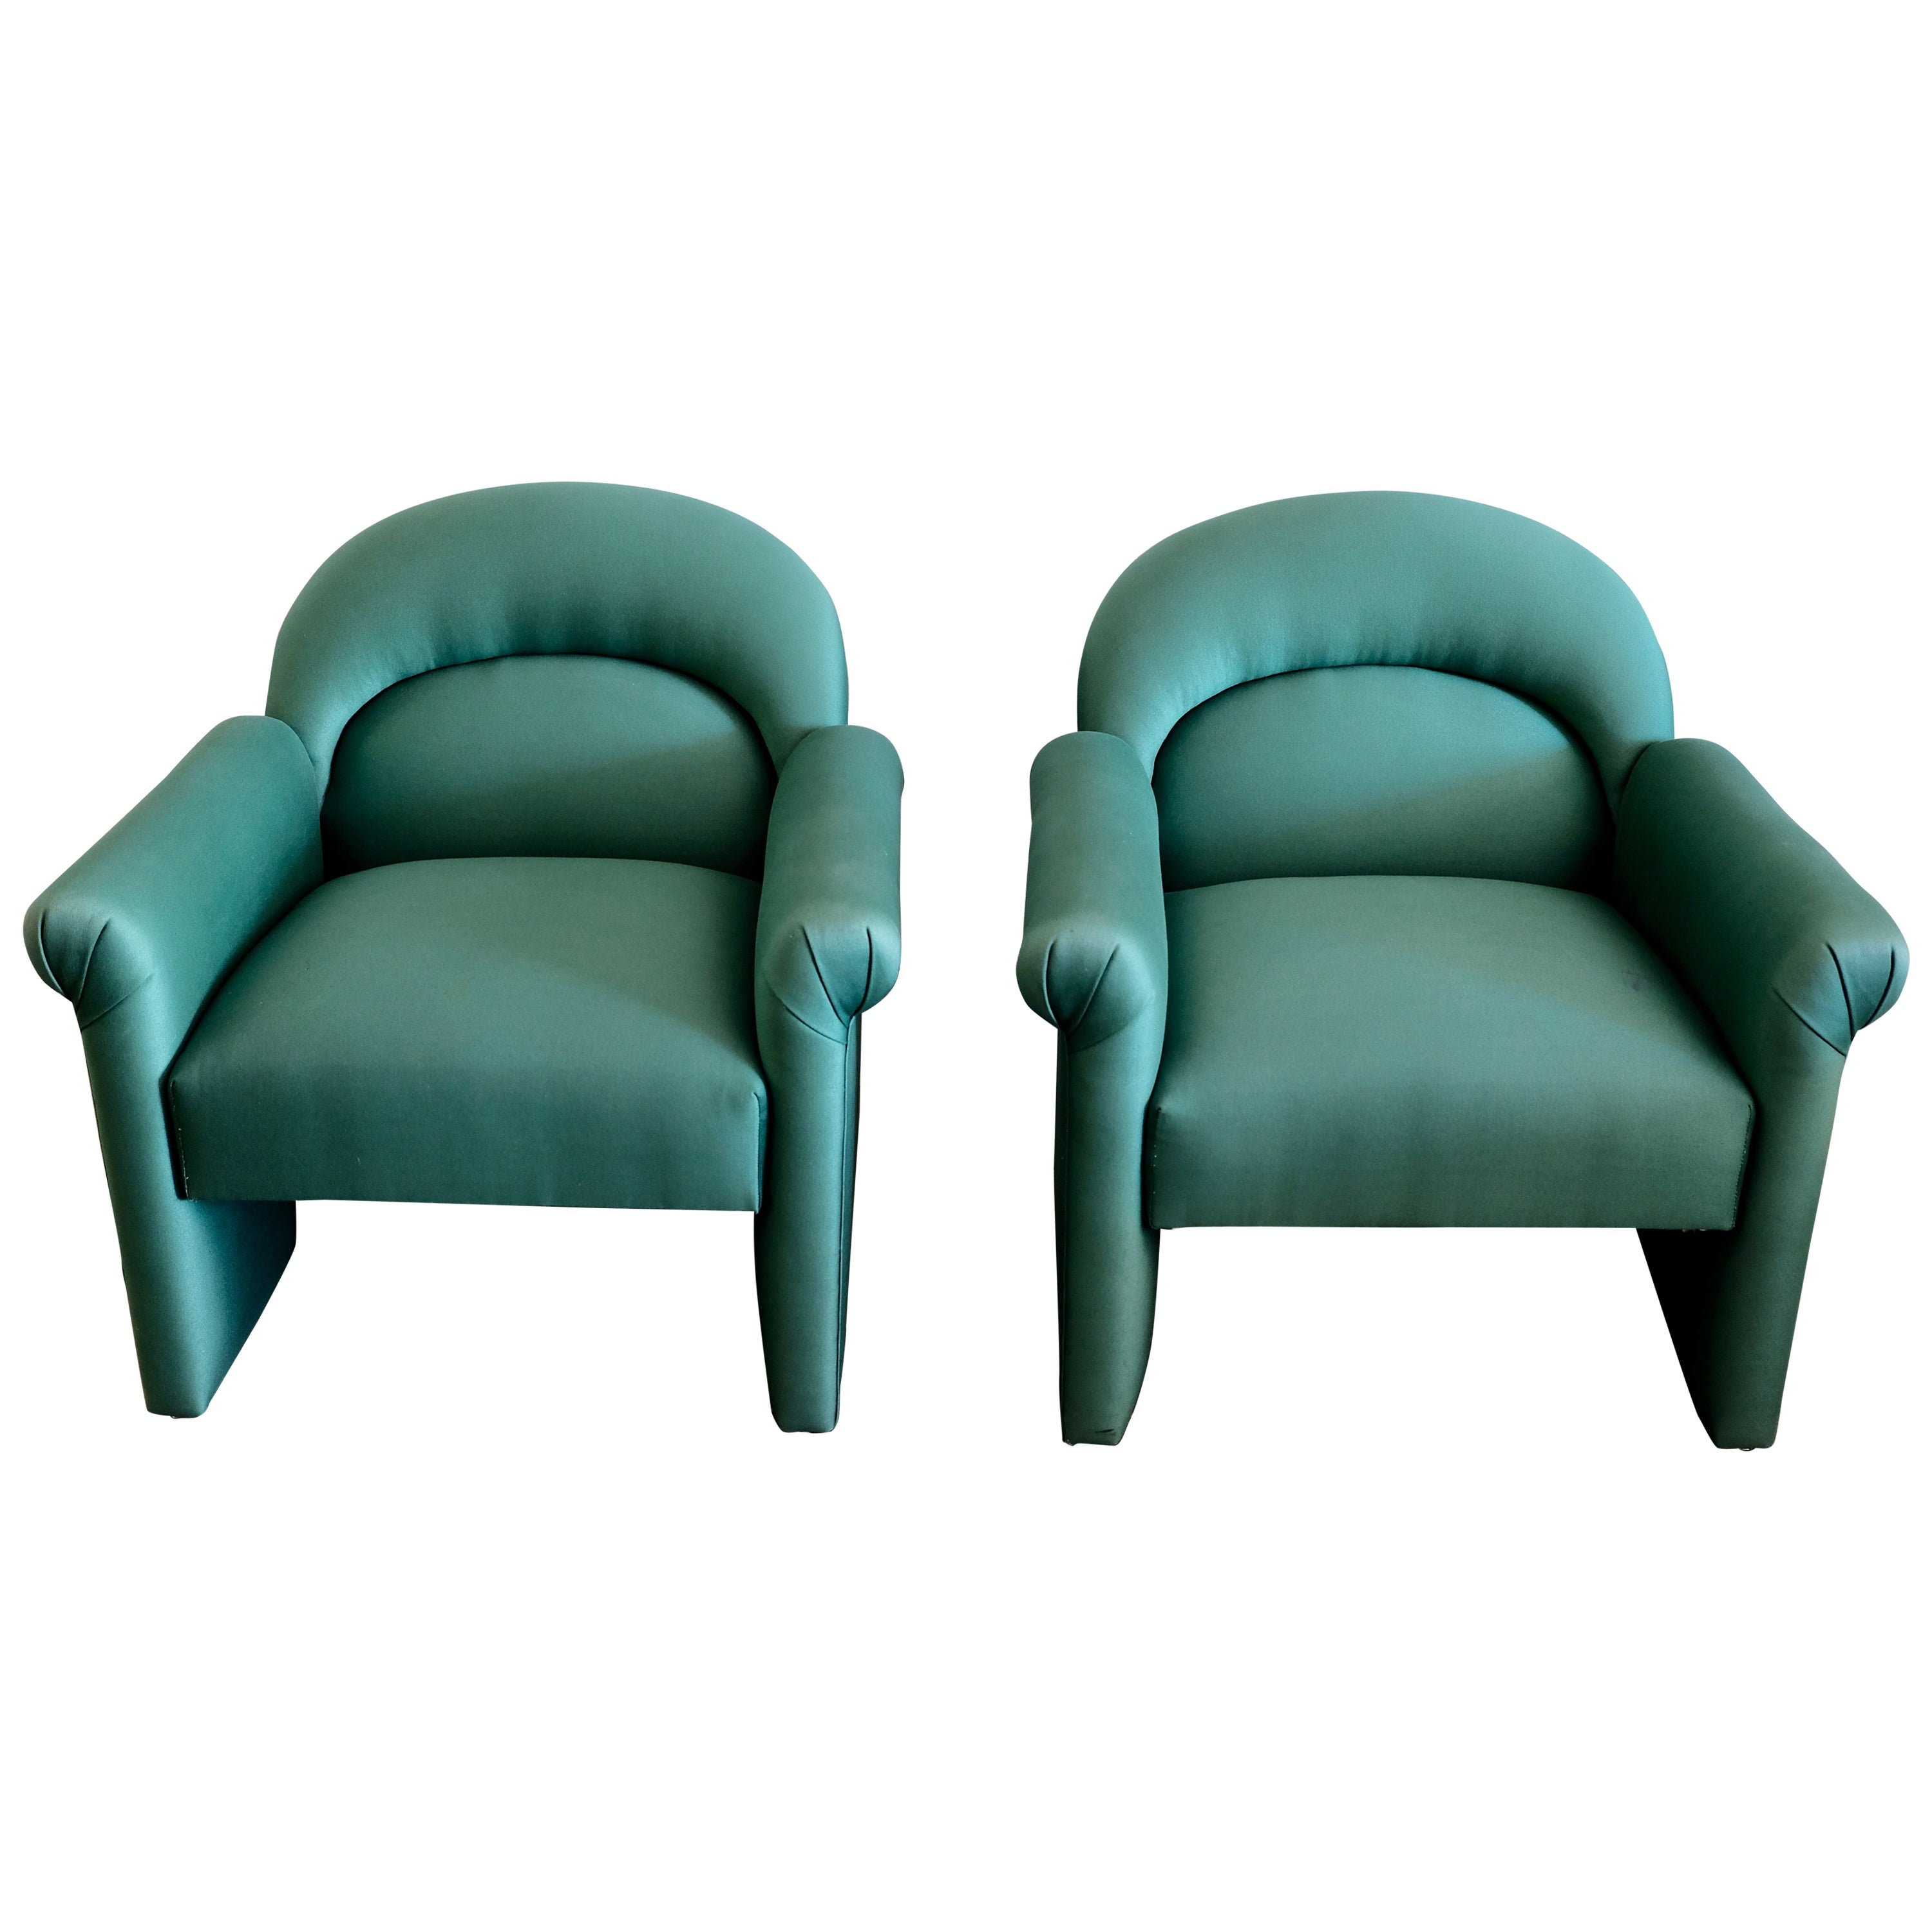 Pair of upholstered emerald green postmodern lounge chairs for sale at 1stdibs